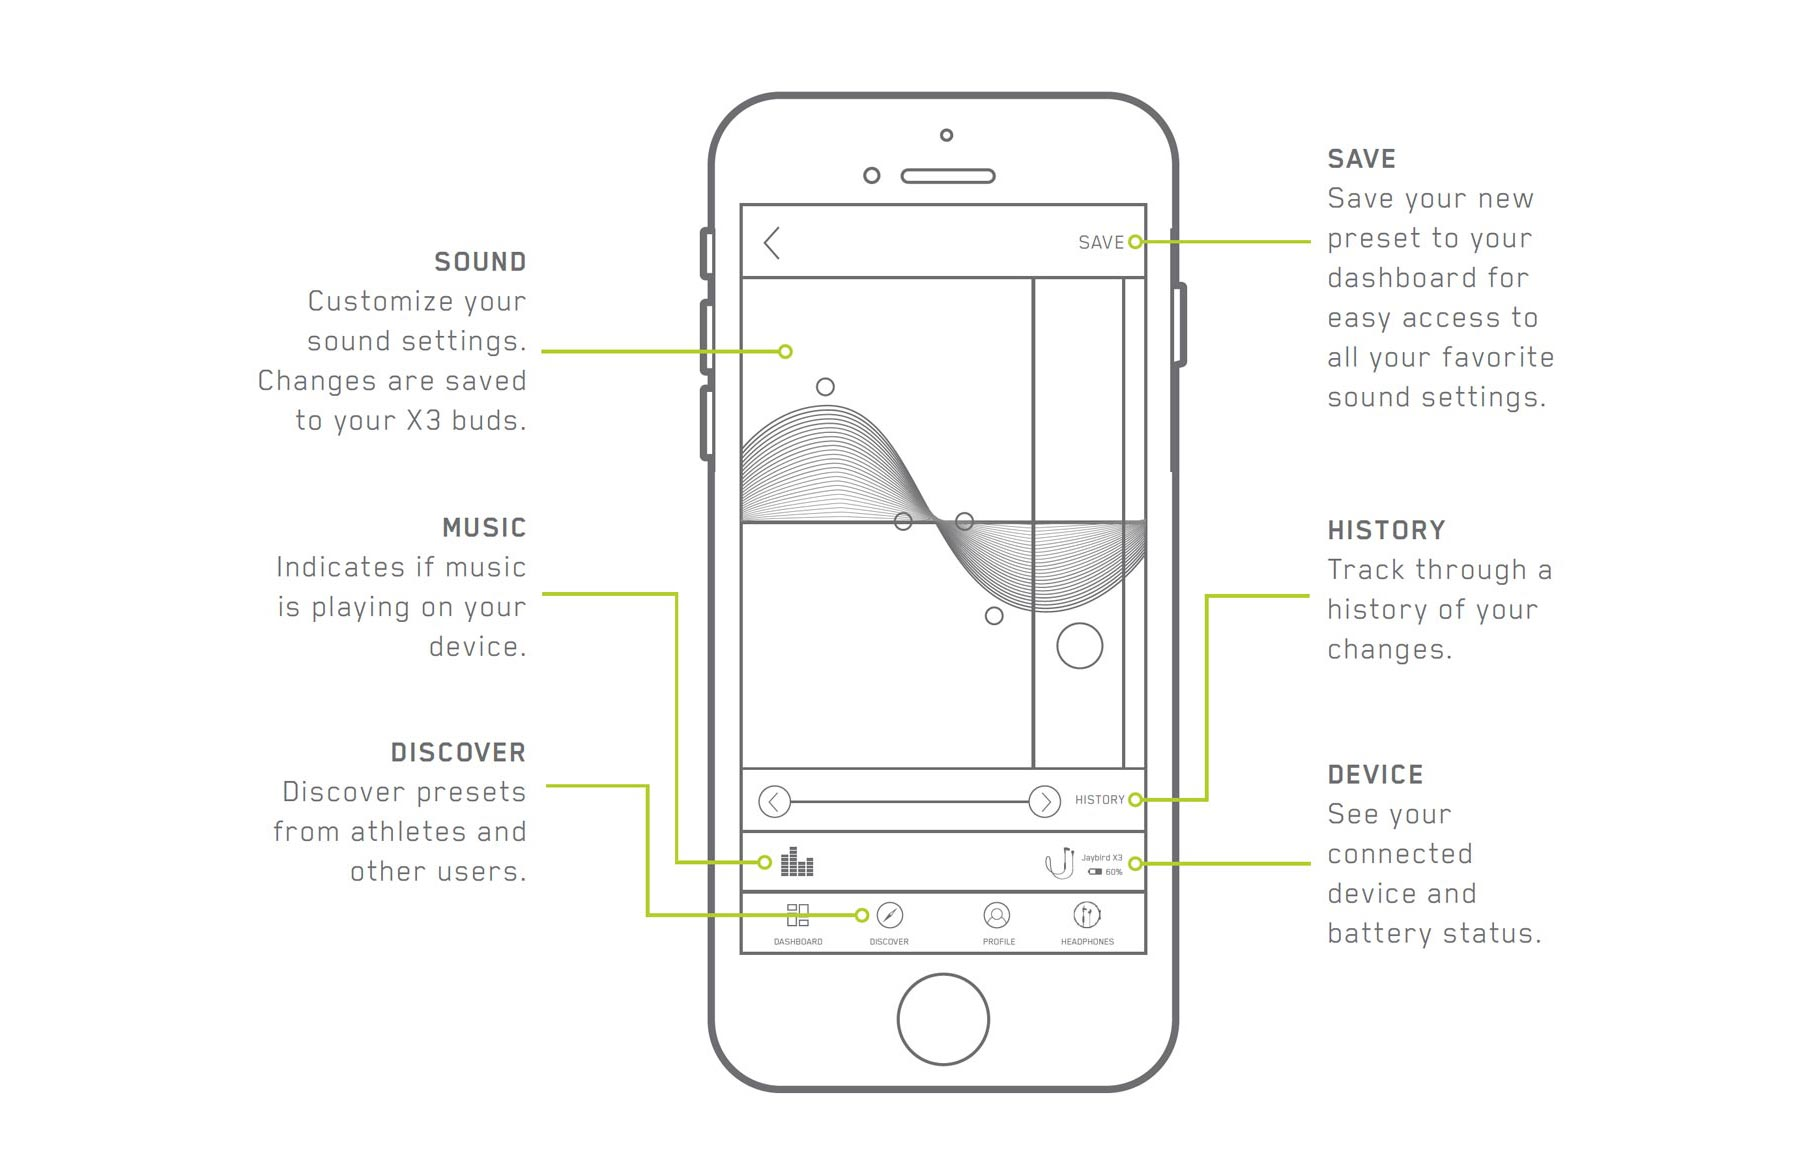 Frequently Ask Questions Iphone Headphone Jack Wiring Diagram Further Touch Tone Phone Additionally You Can Use The Mysound App To Reach Out Us For Support Feedback And General Inquiries About Your Buds